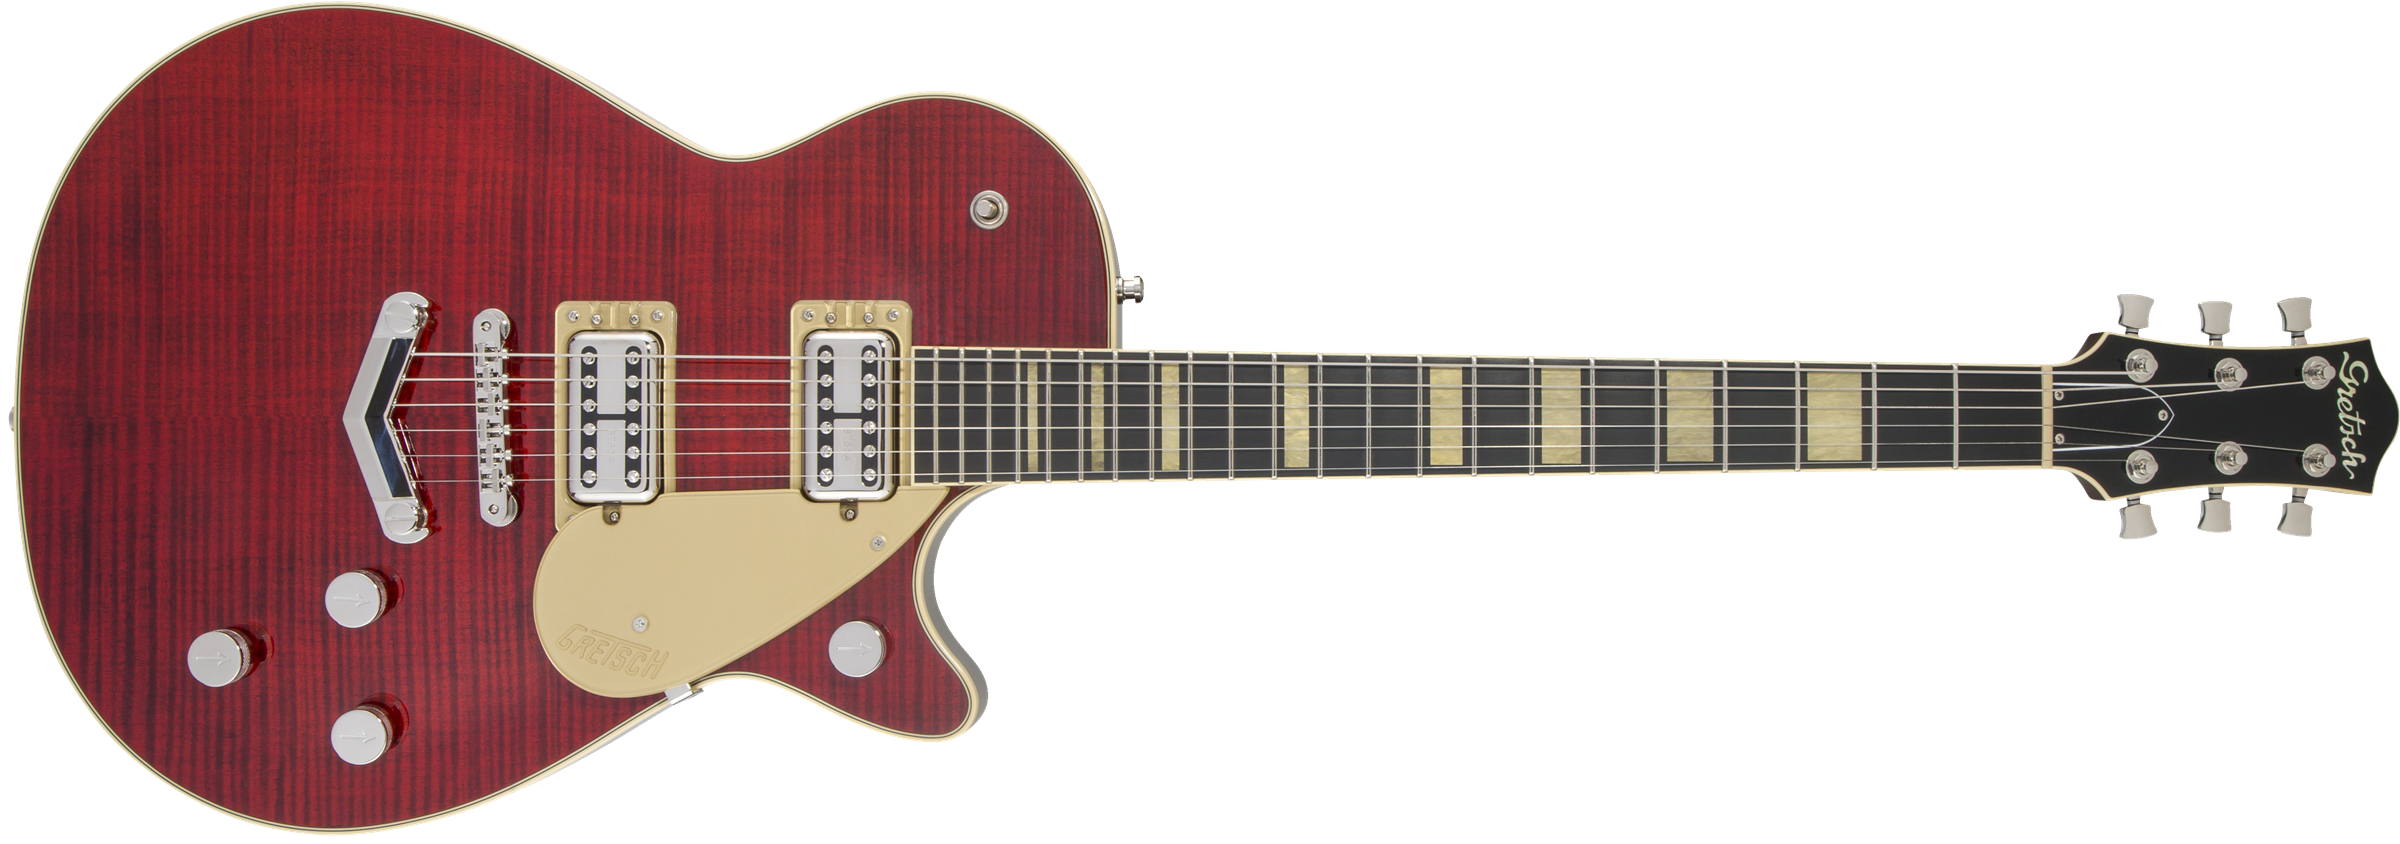 GRETSCH-G6228FM-Players-Edition-Jet-BT-with-V-Stoptail-Flame-Maple-Ebony-Fingerboard-Crimson-Stain-sku-571002851